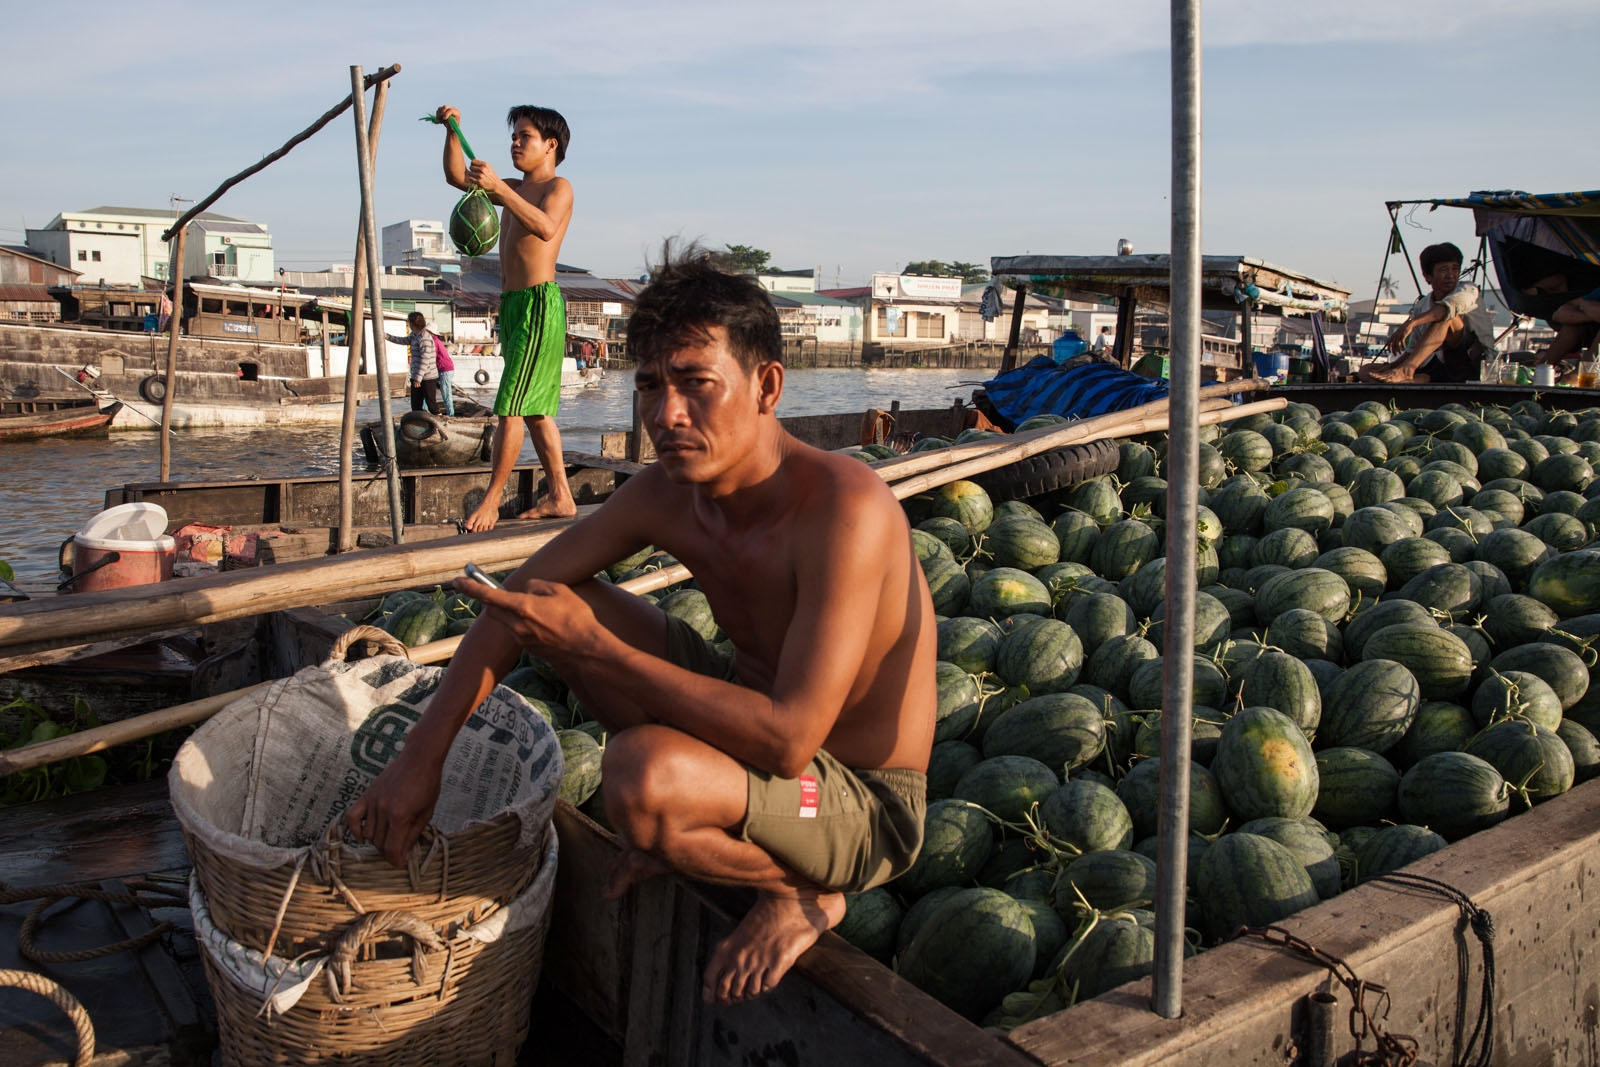 At Cai Rang floating market a man ties a watermelon to a pole advertising what his families boat is selling.